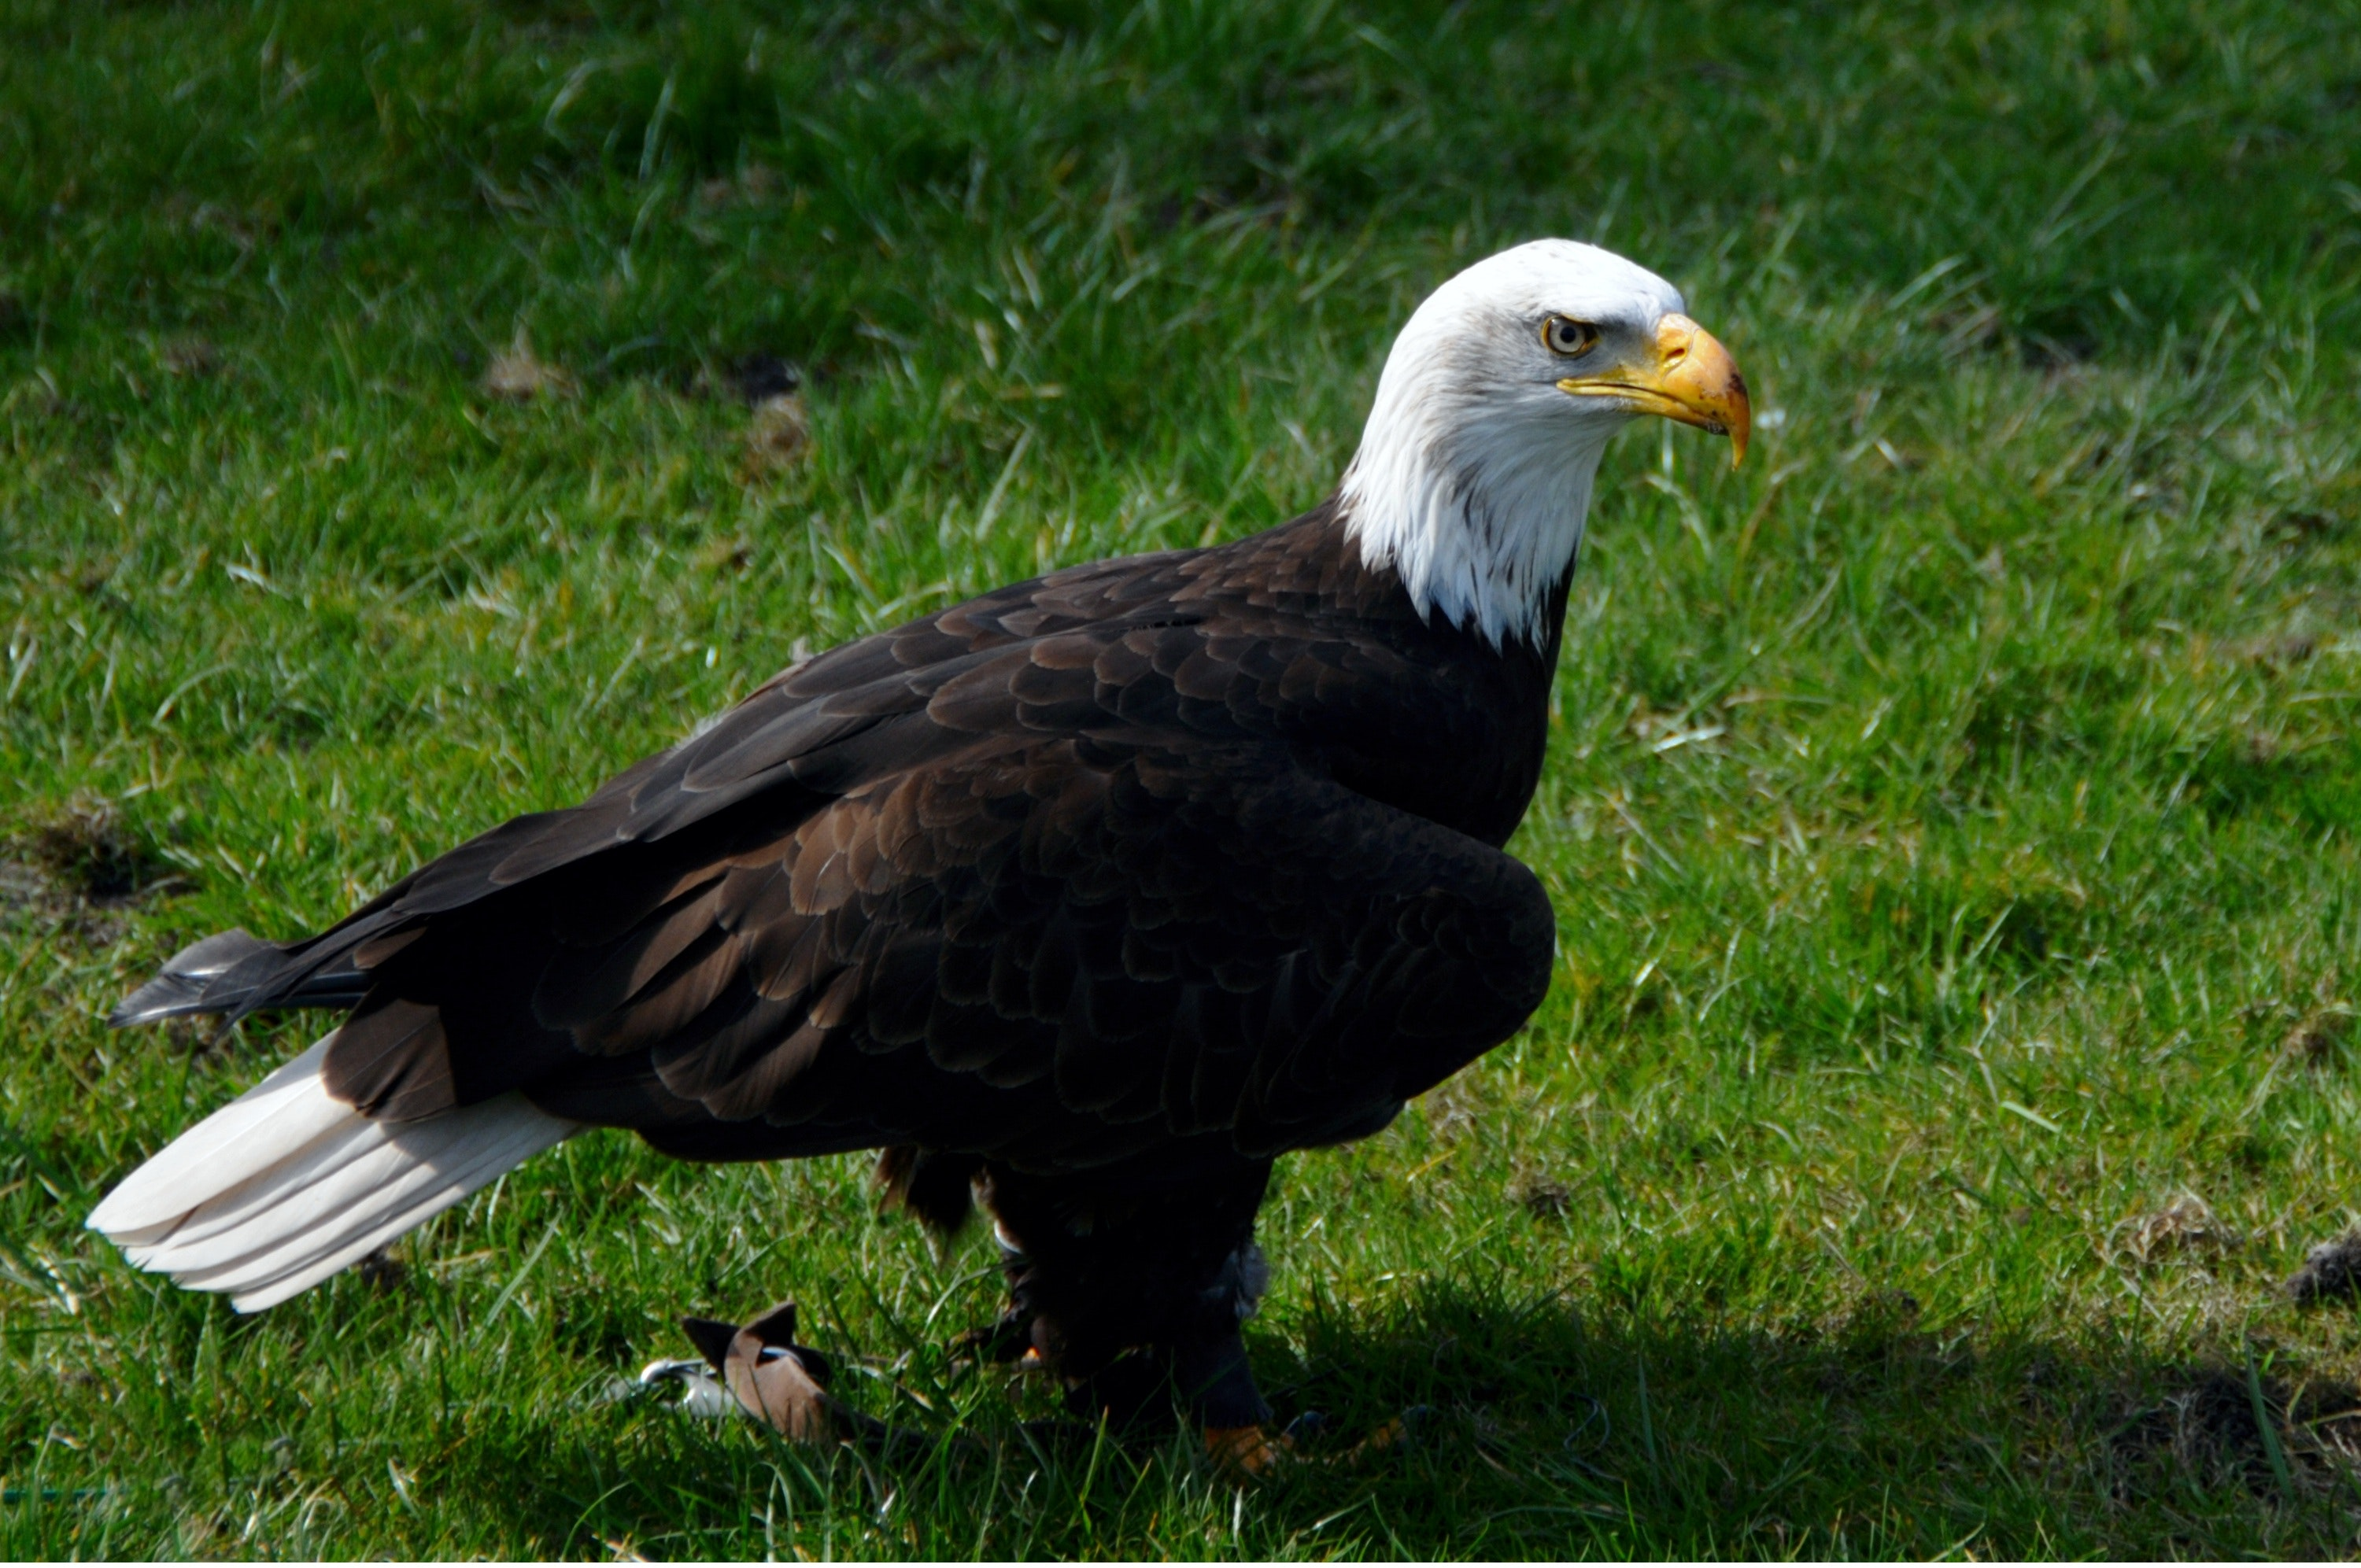 Bald eagle on green grass photo